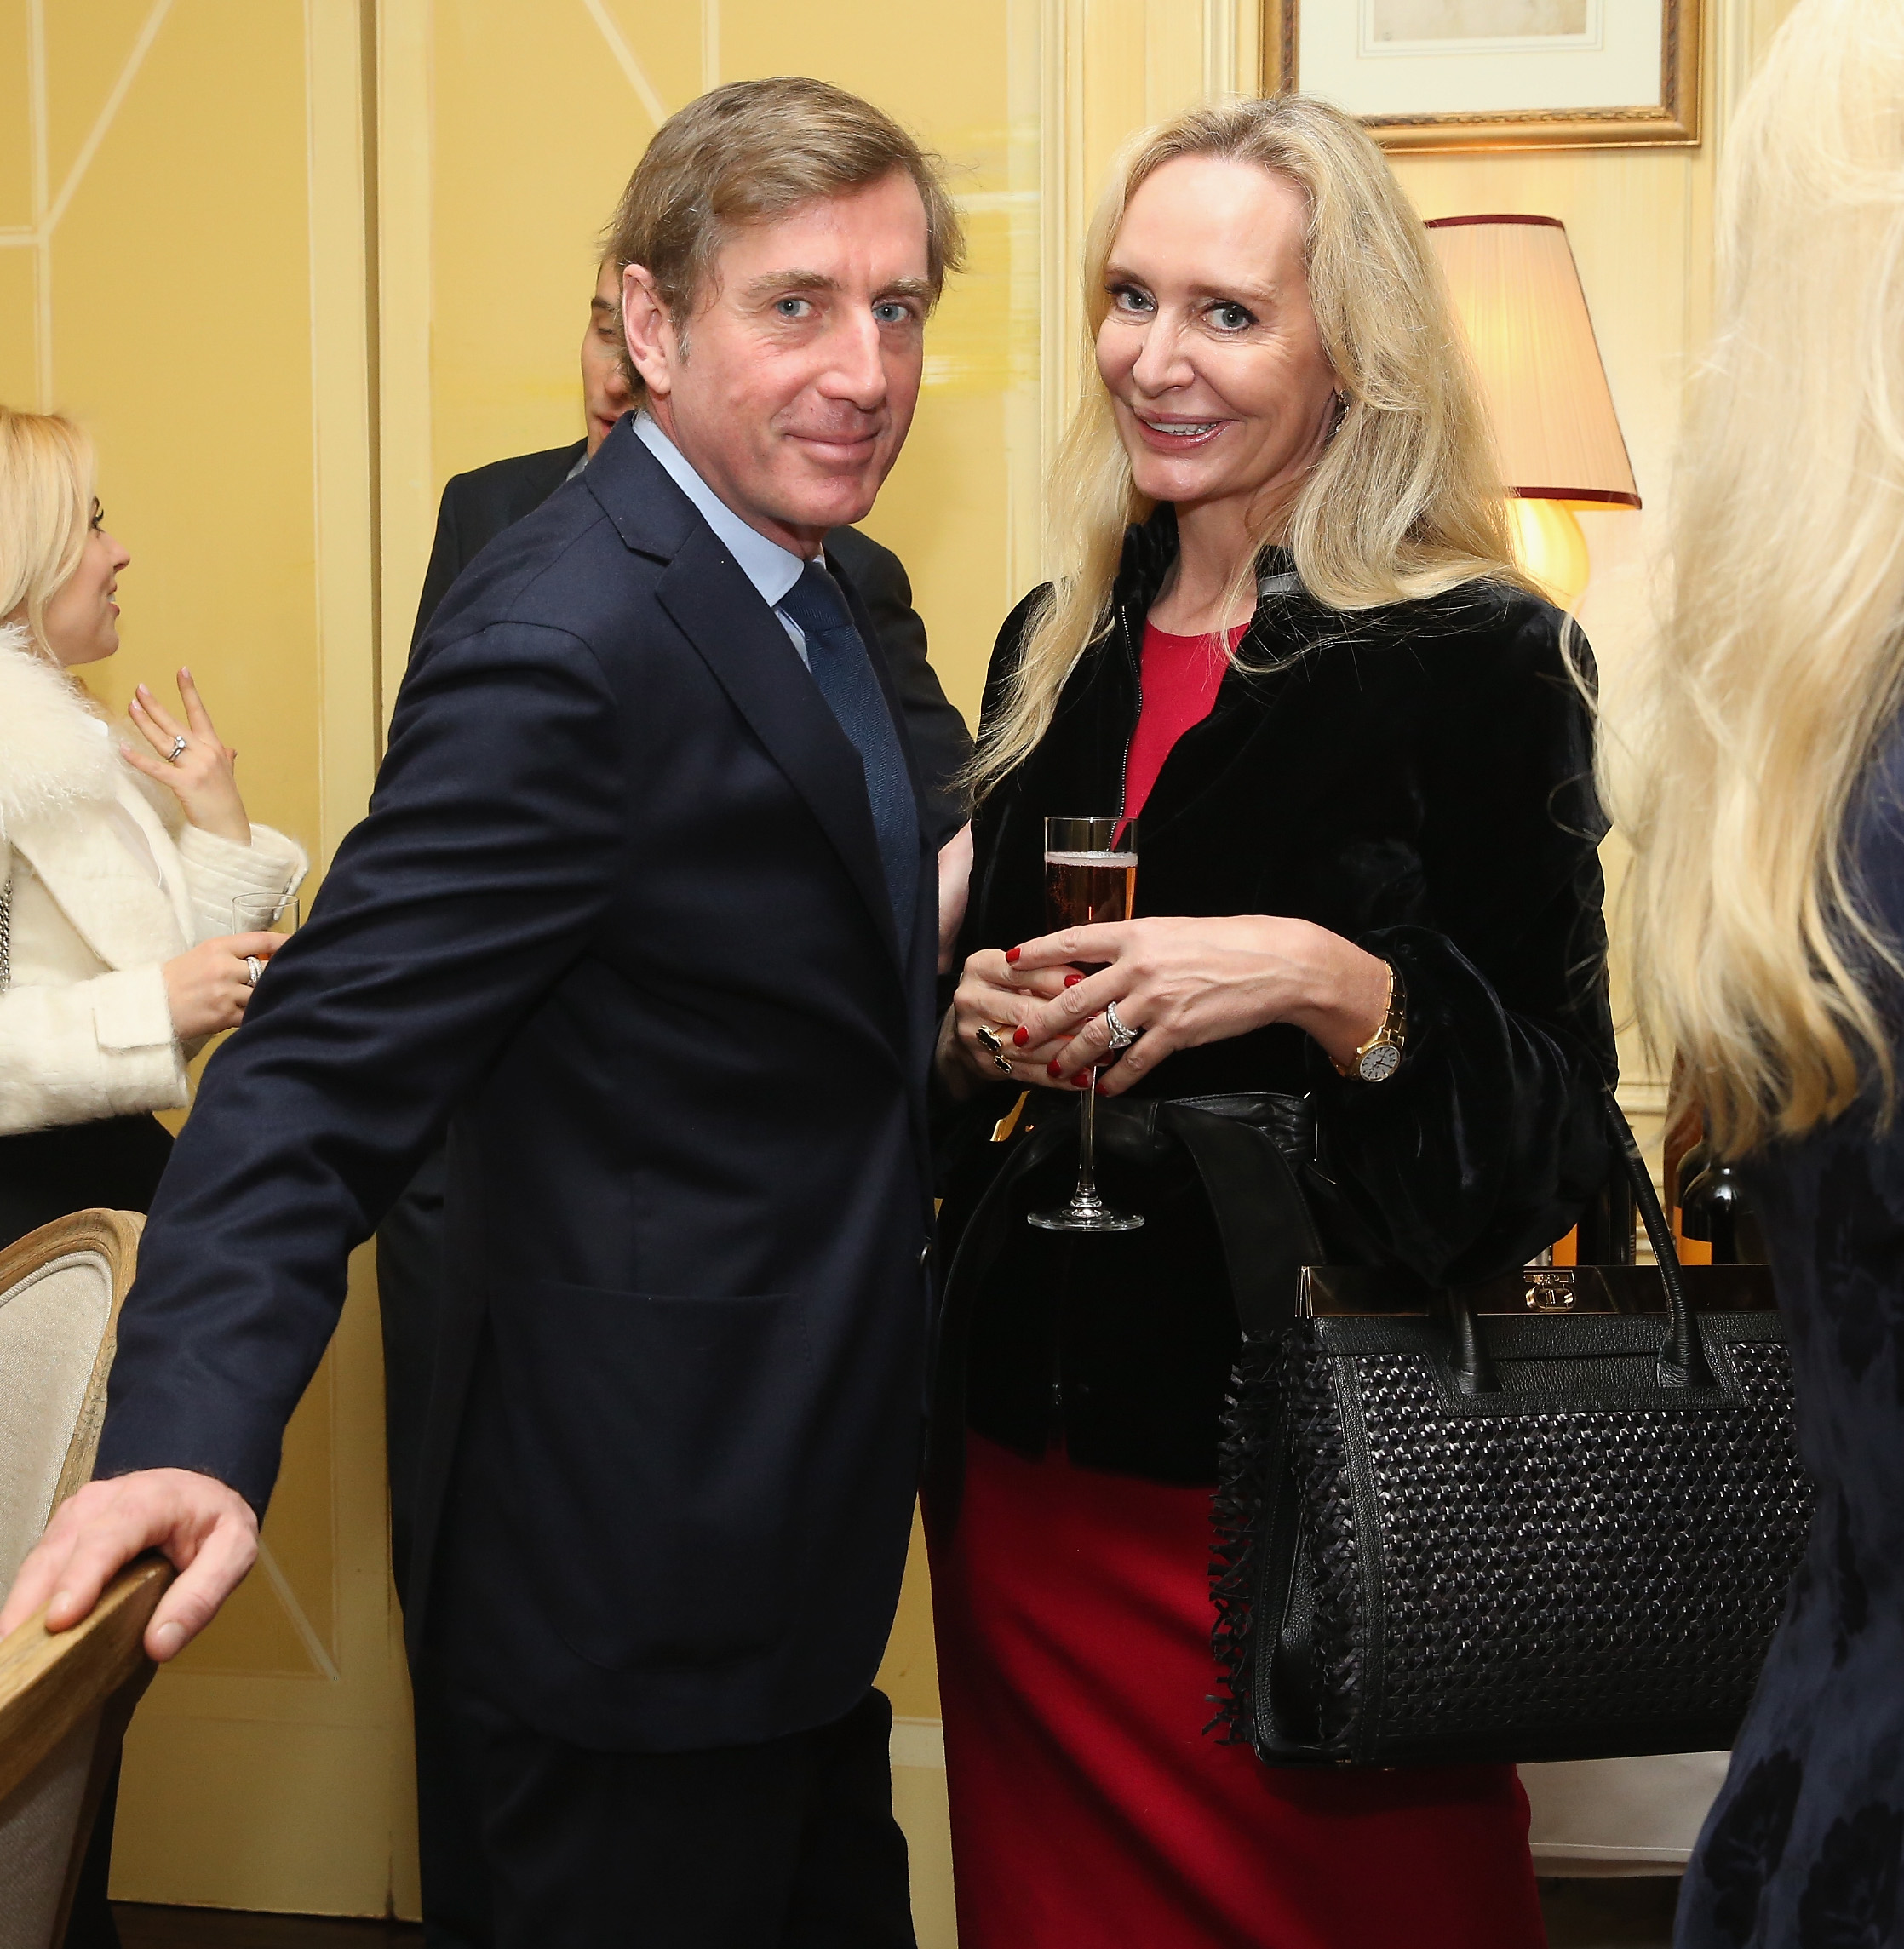 NEW YORK, NY - JANUARY 08: Prince Charles Henri Lobkowicz (L) and Marie-Claire Gladstone attend a Luncheon For Prince Charles Henri Lobkowicz At Plaza Athenee on January 8, 2016 in New York City. (Photo by Robin Marchant/Getty Images for Old Fashioned Mom Magazine)